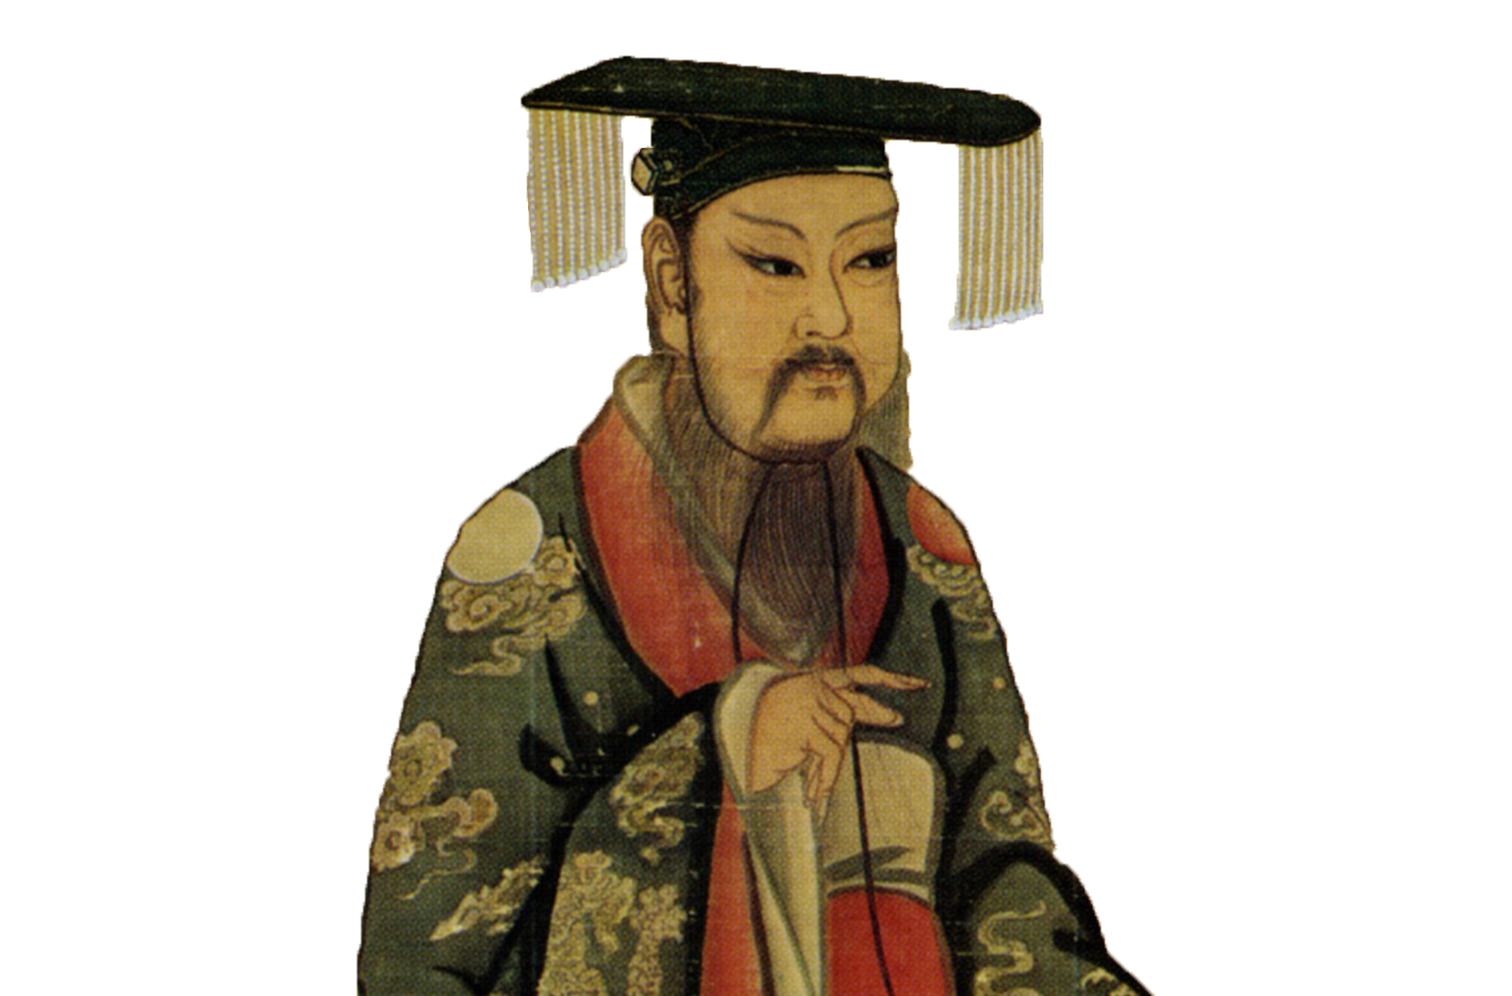 Xia Dynasty Stock Photos Xia Dynasty Stock Images - Alamy Pictures of xia dynasty